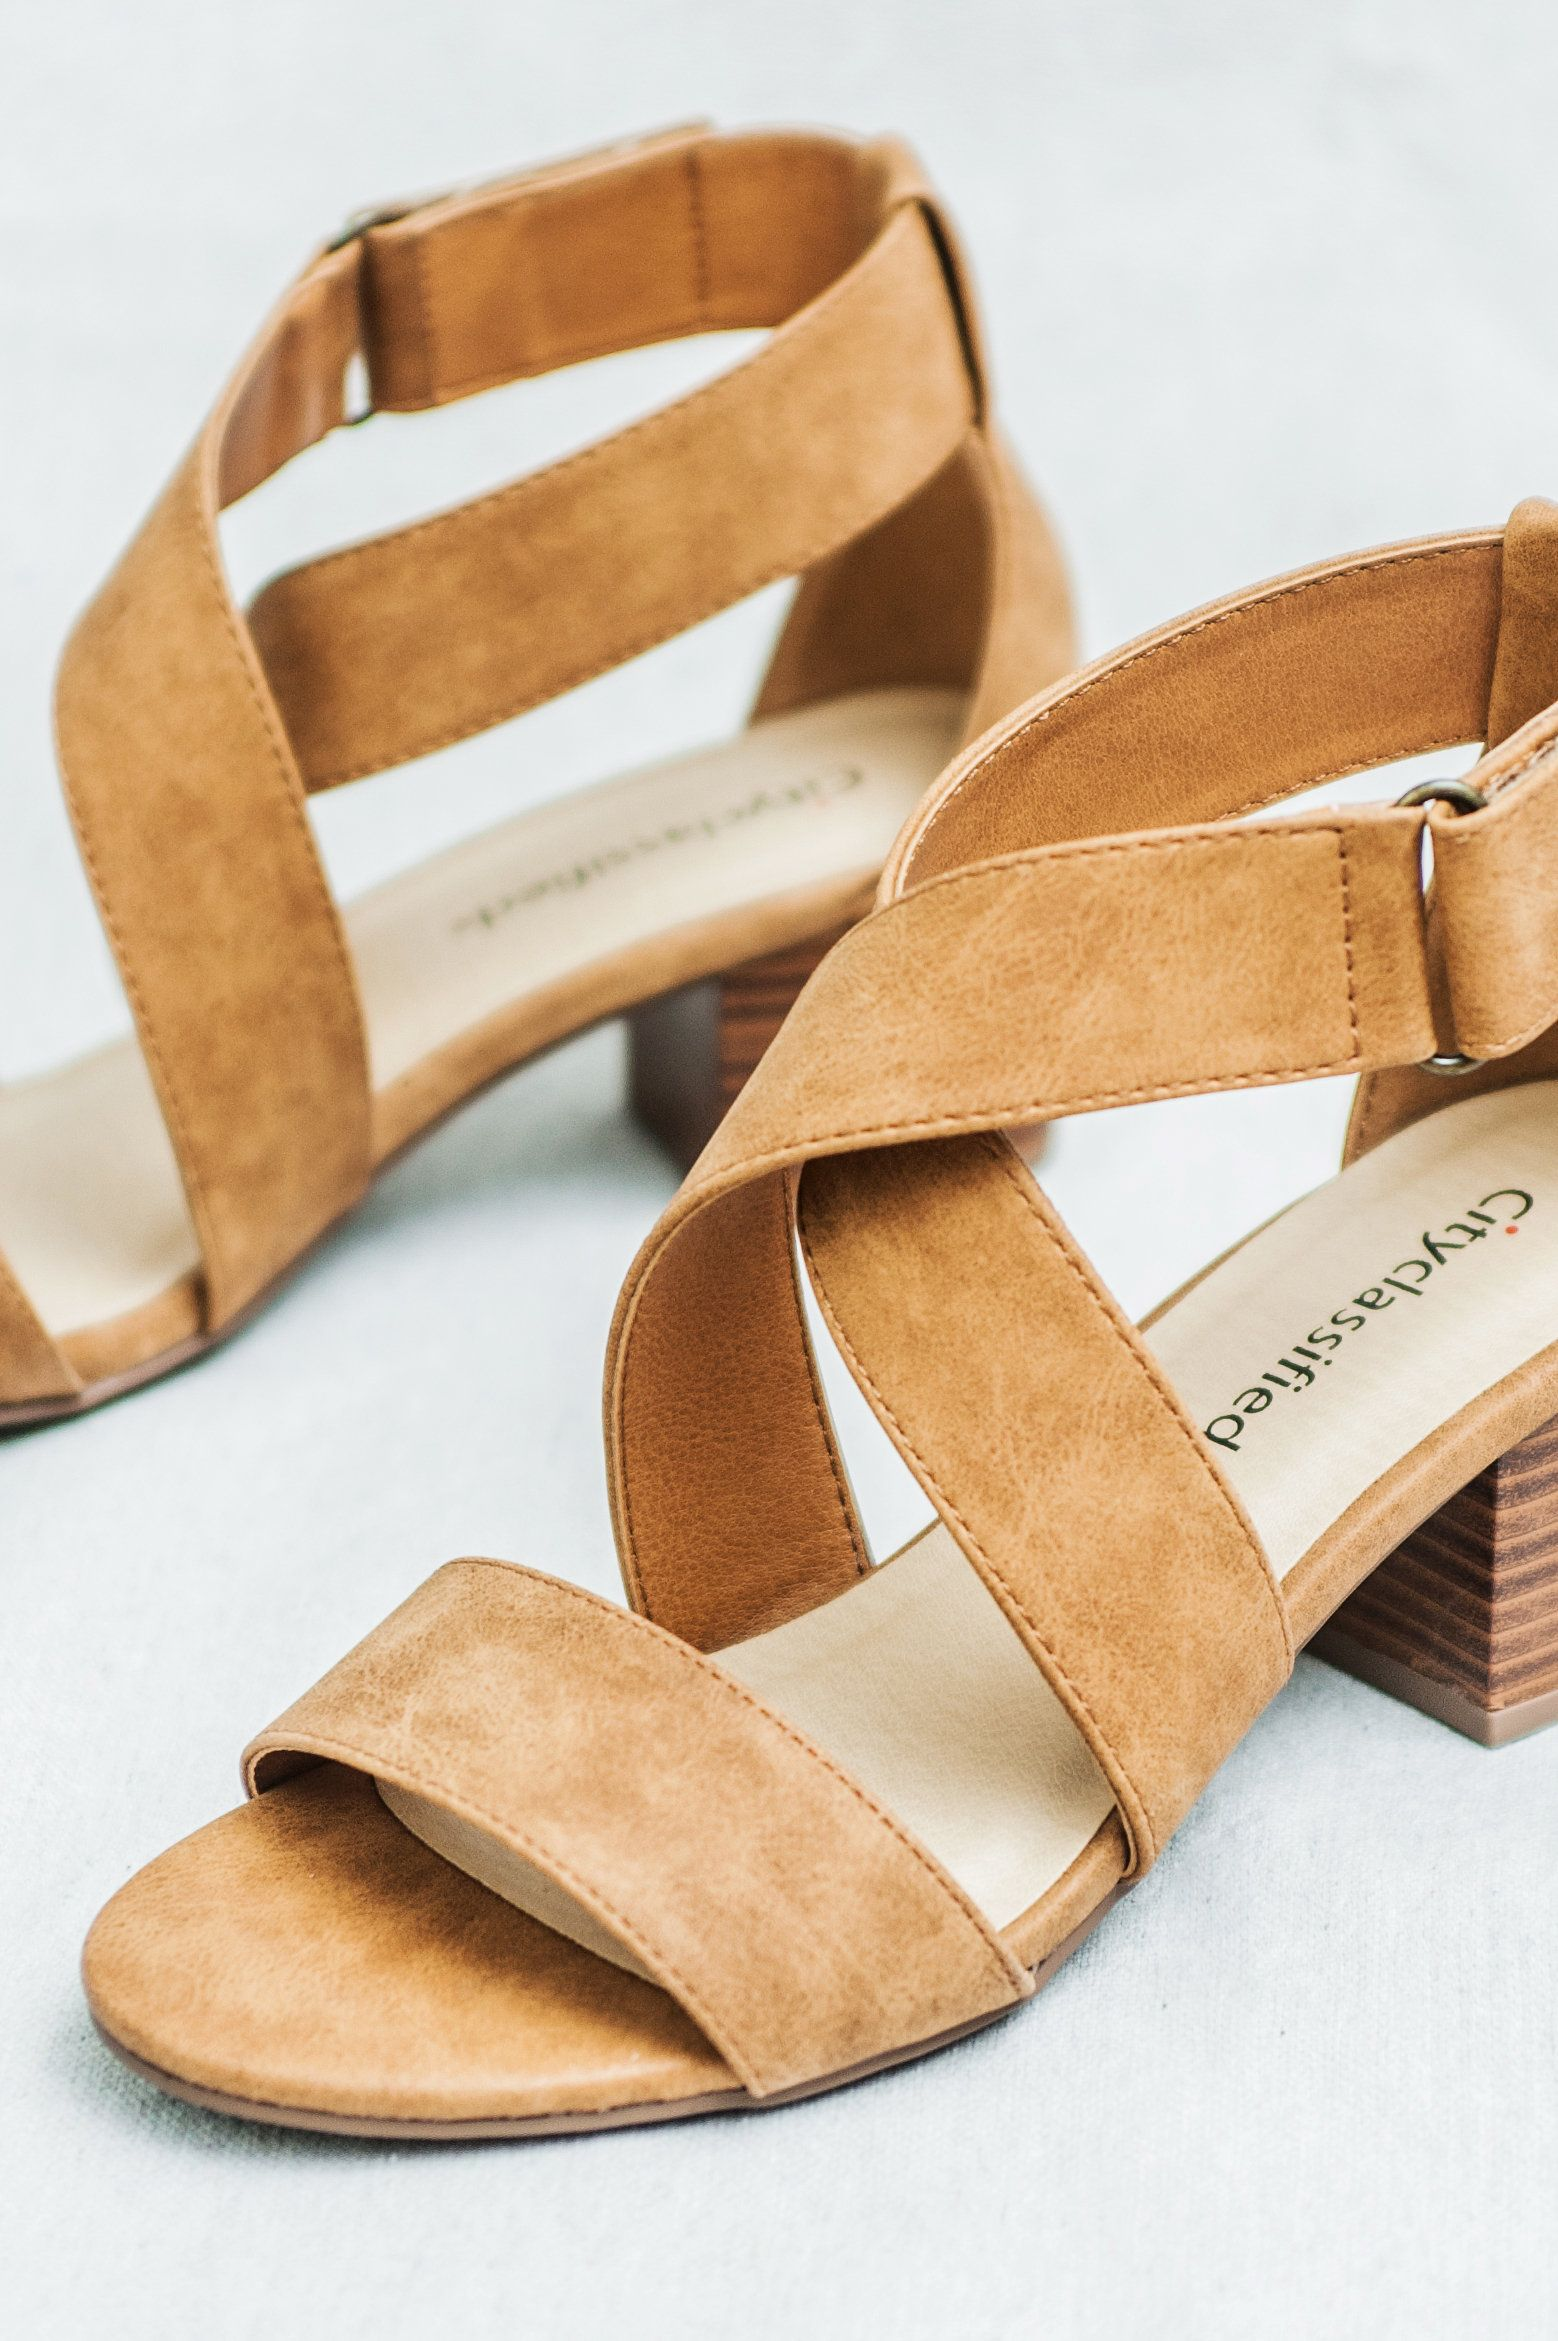 Perfect Everyday Dress Sandal Strappy Sandals Heels Sandals Heels Dress Sandals [ 2341 x 1558 Pixel ]